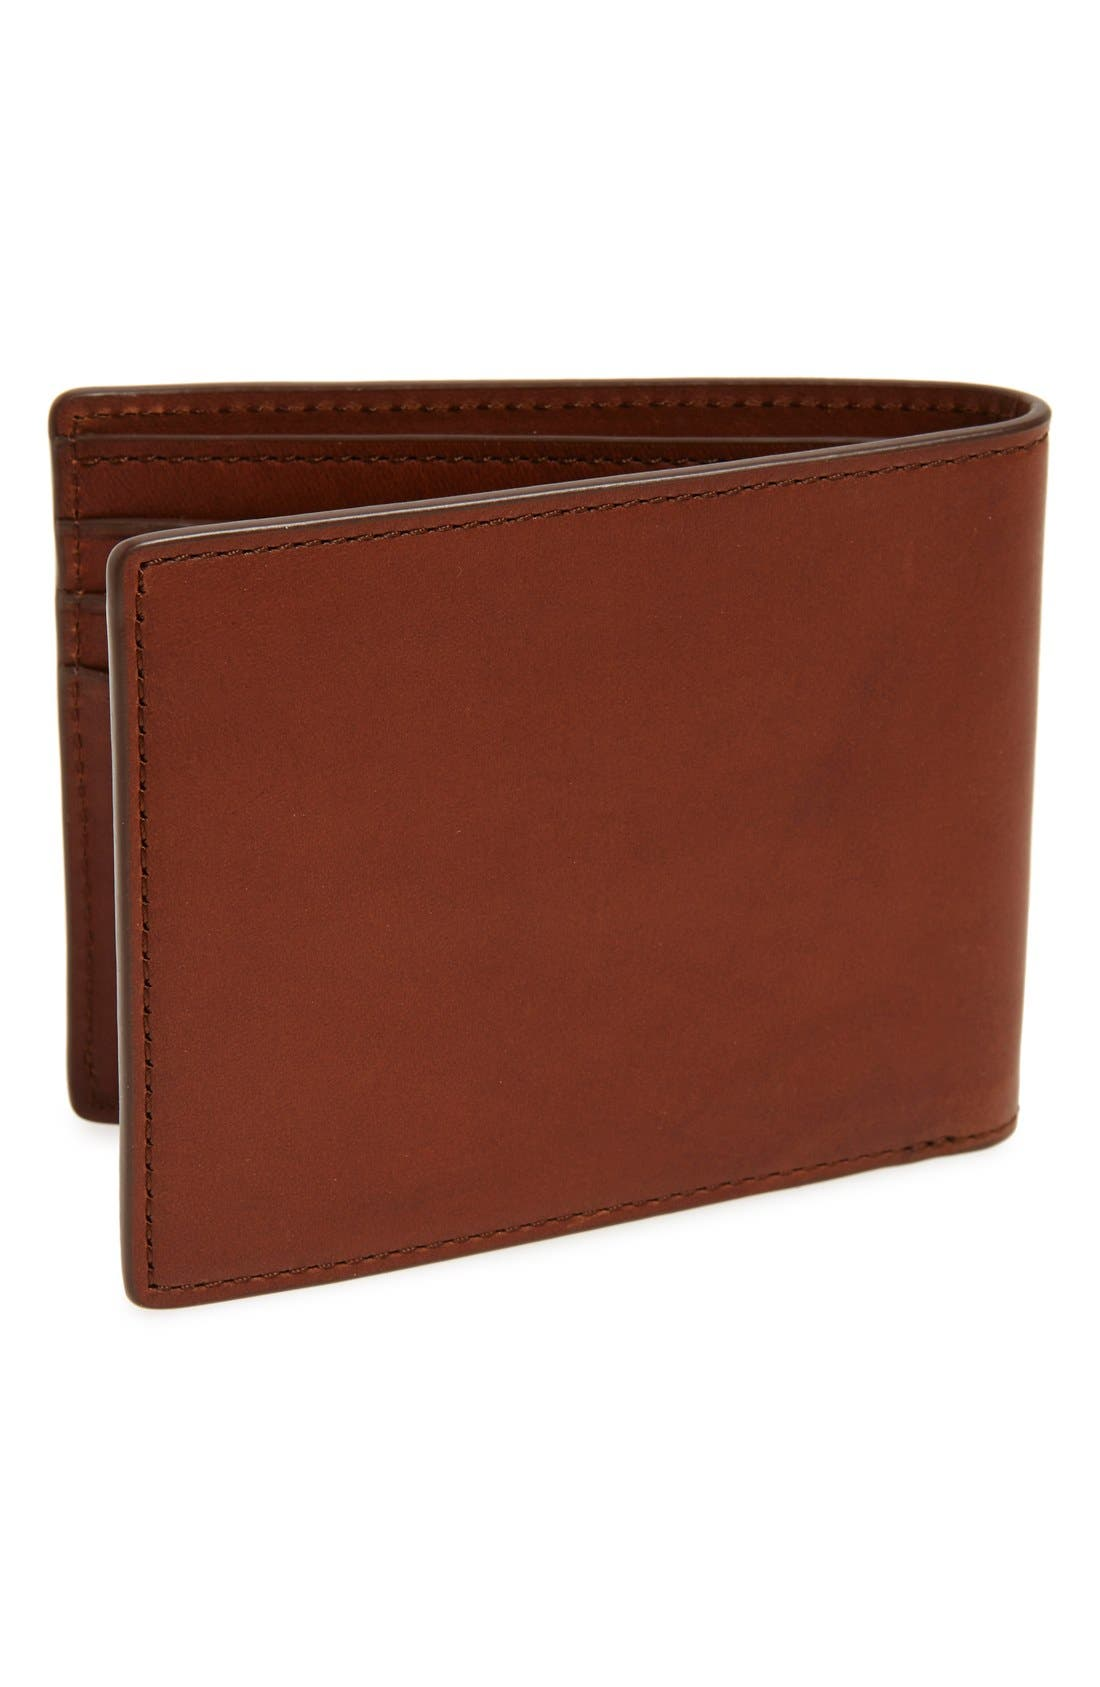 Hampshire Leather Bifold Wallet,                             Alternate thumbnail 6, color,